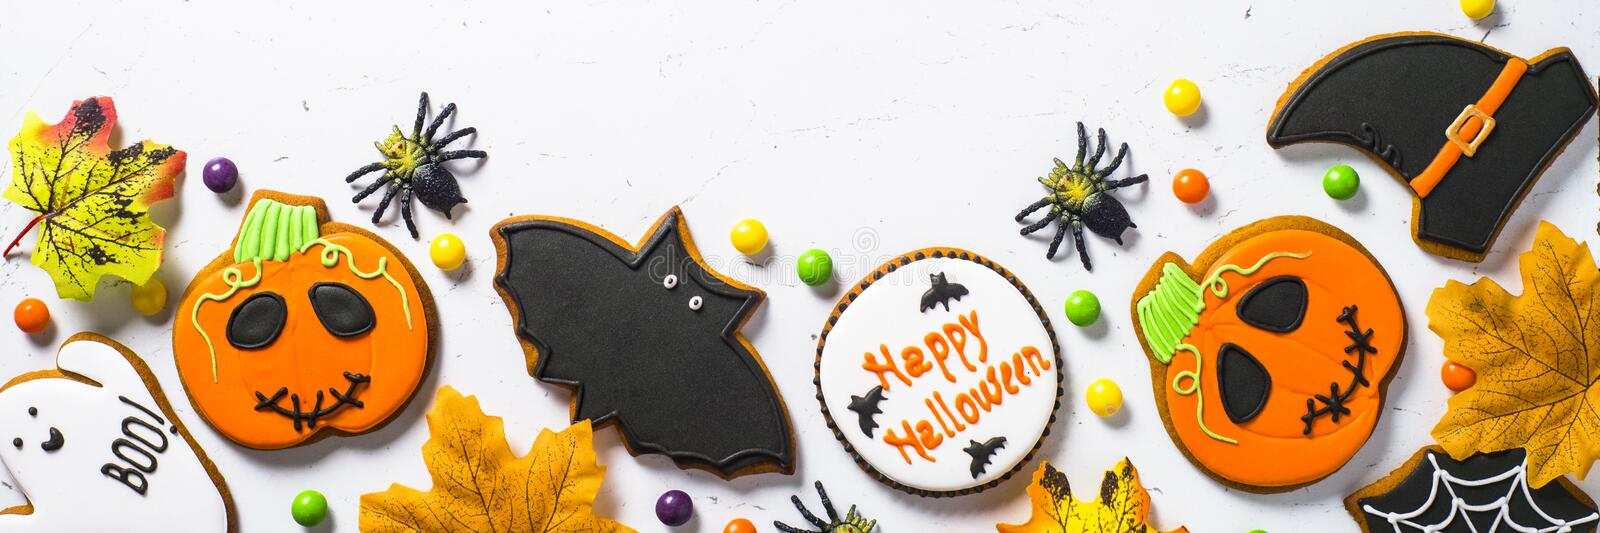 Halloween food background. Long format. royalty free stock photography